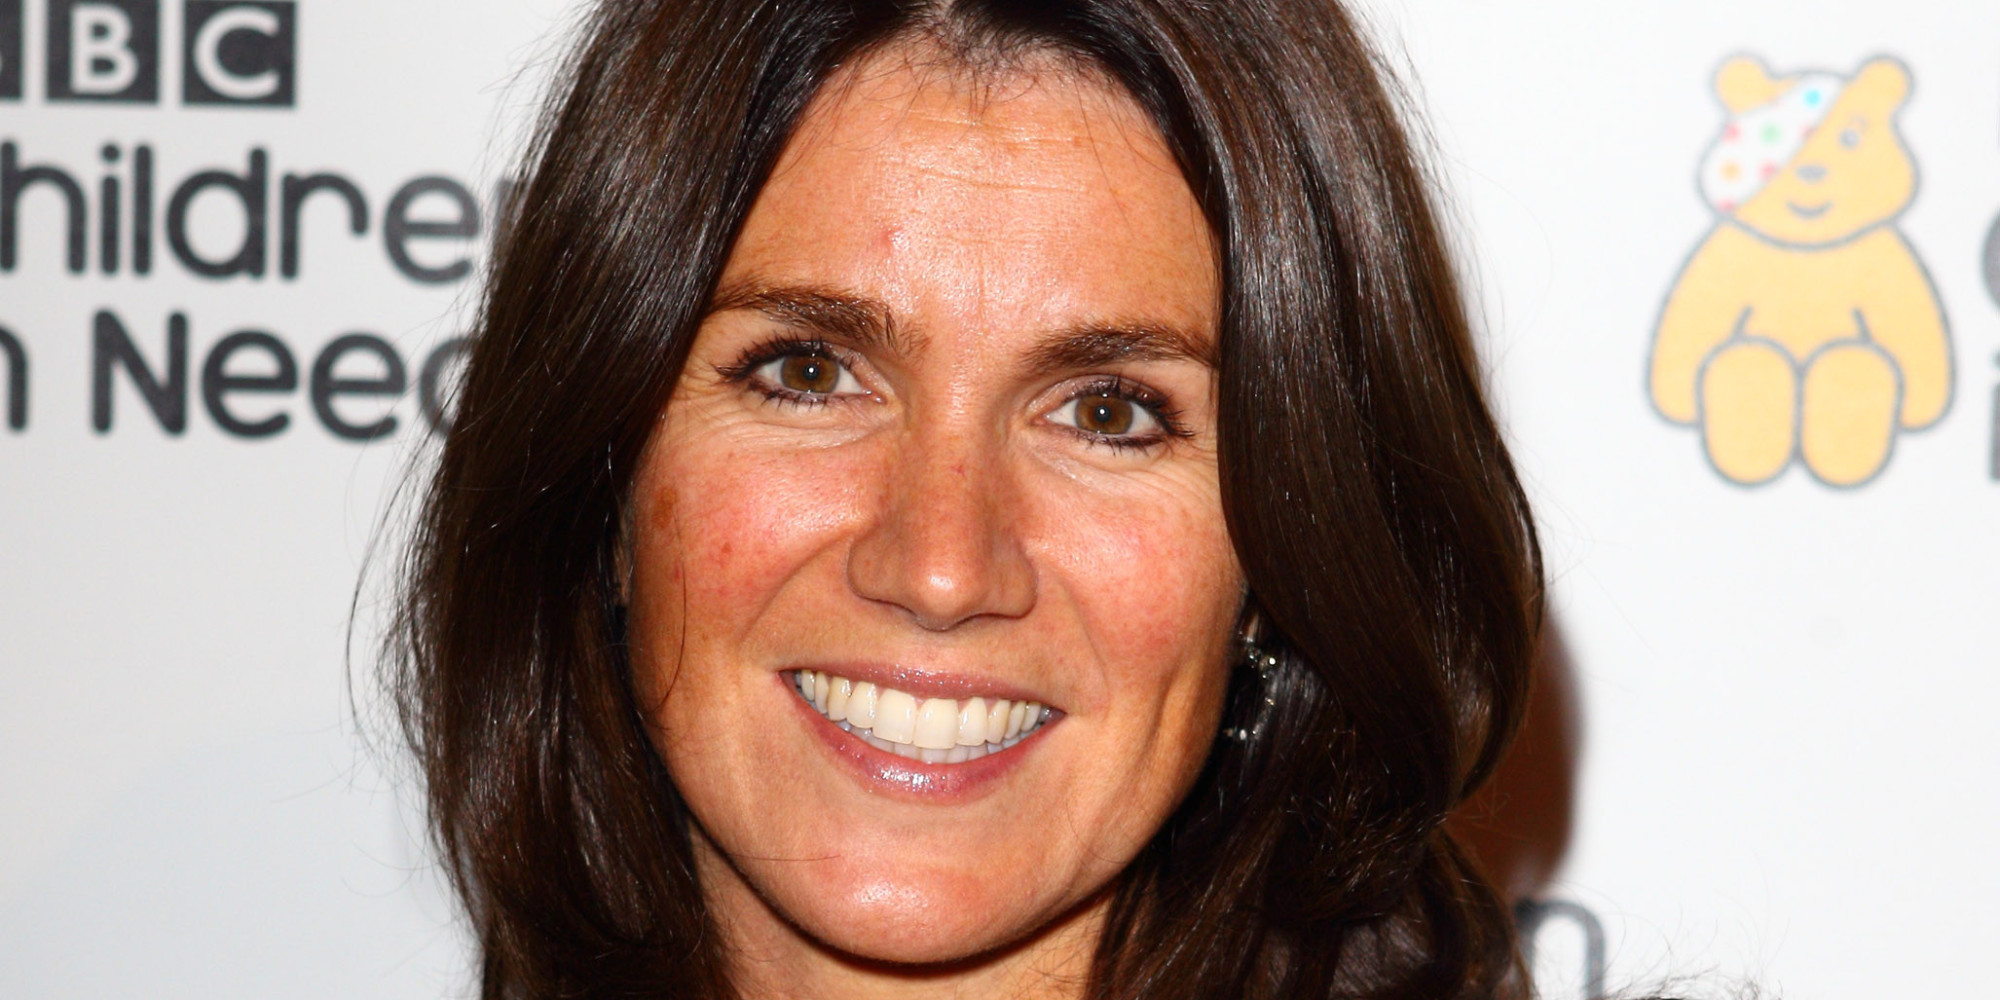 Susanna Reid Susanna Reid Takes To Twitter To Share Excitement For New